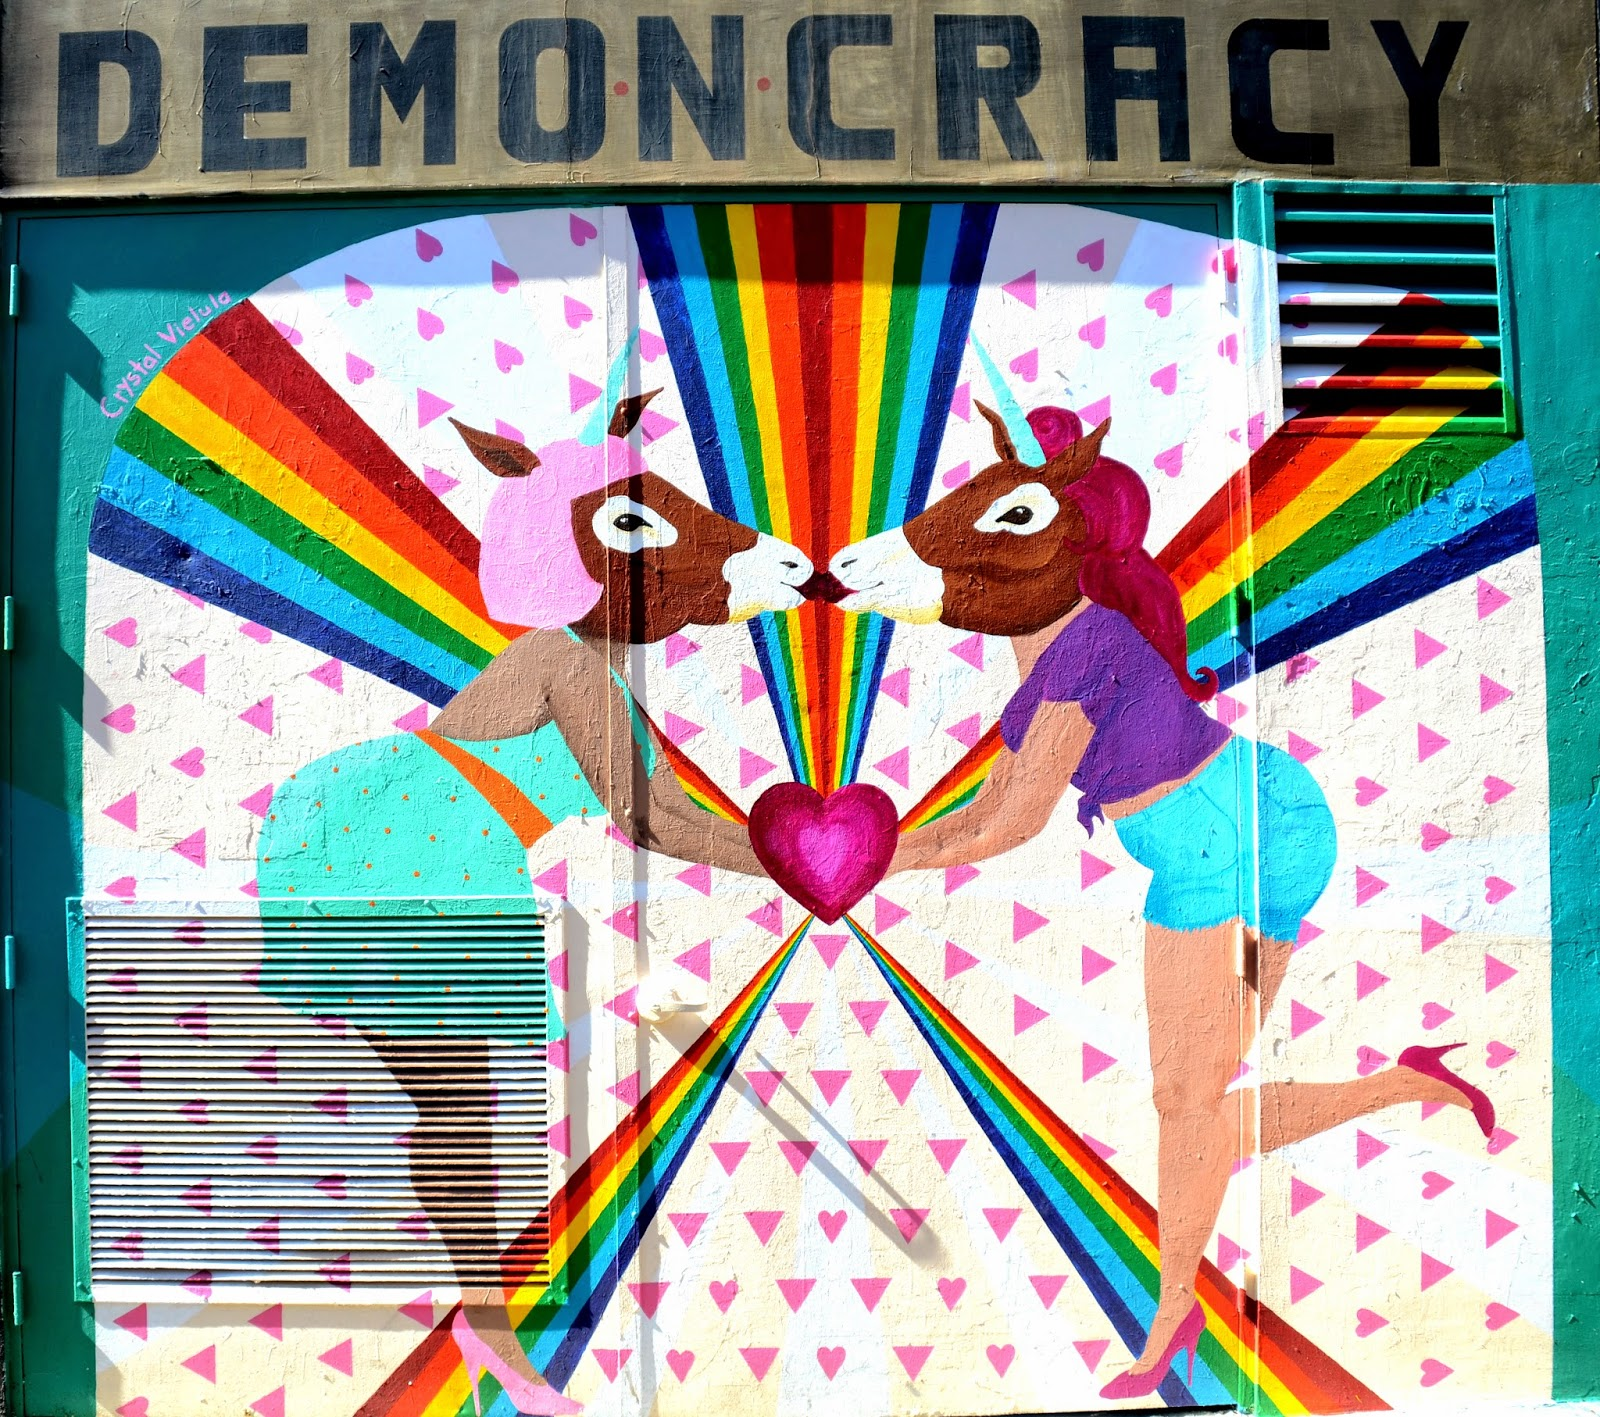 Demoncracy, by Rigo 23 - 2012